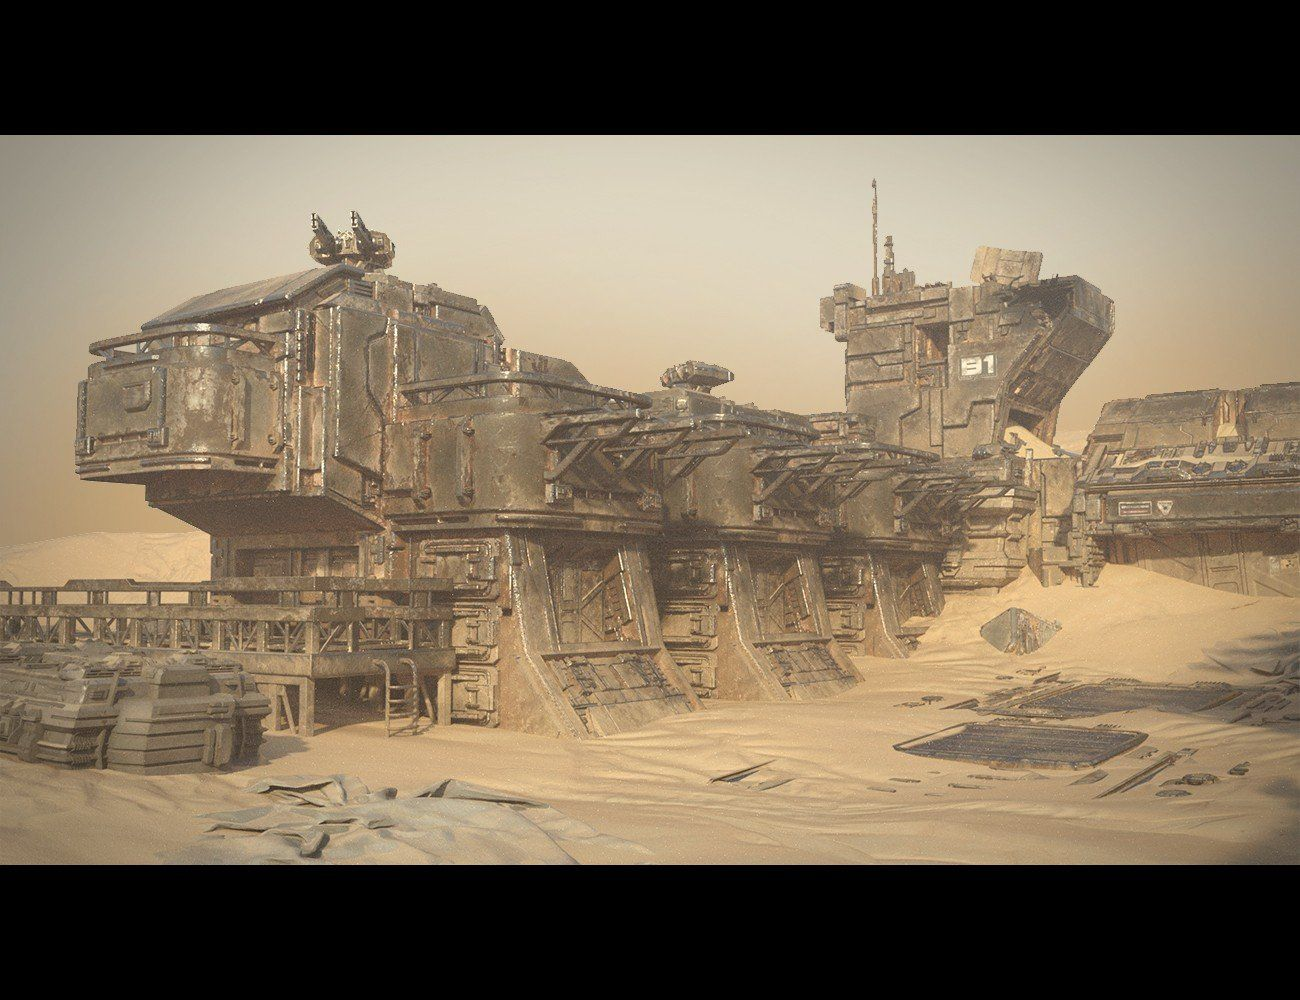 Sci-fi Tank | 3D Models and 3D Software by Daz 3D | Sci fi